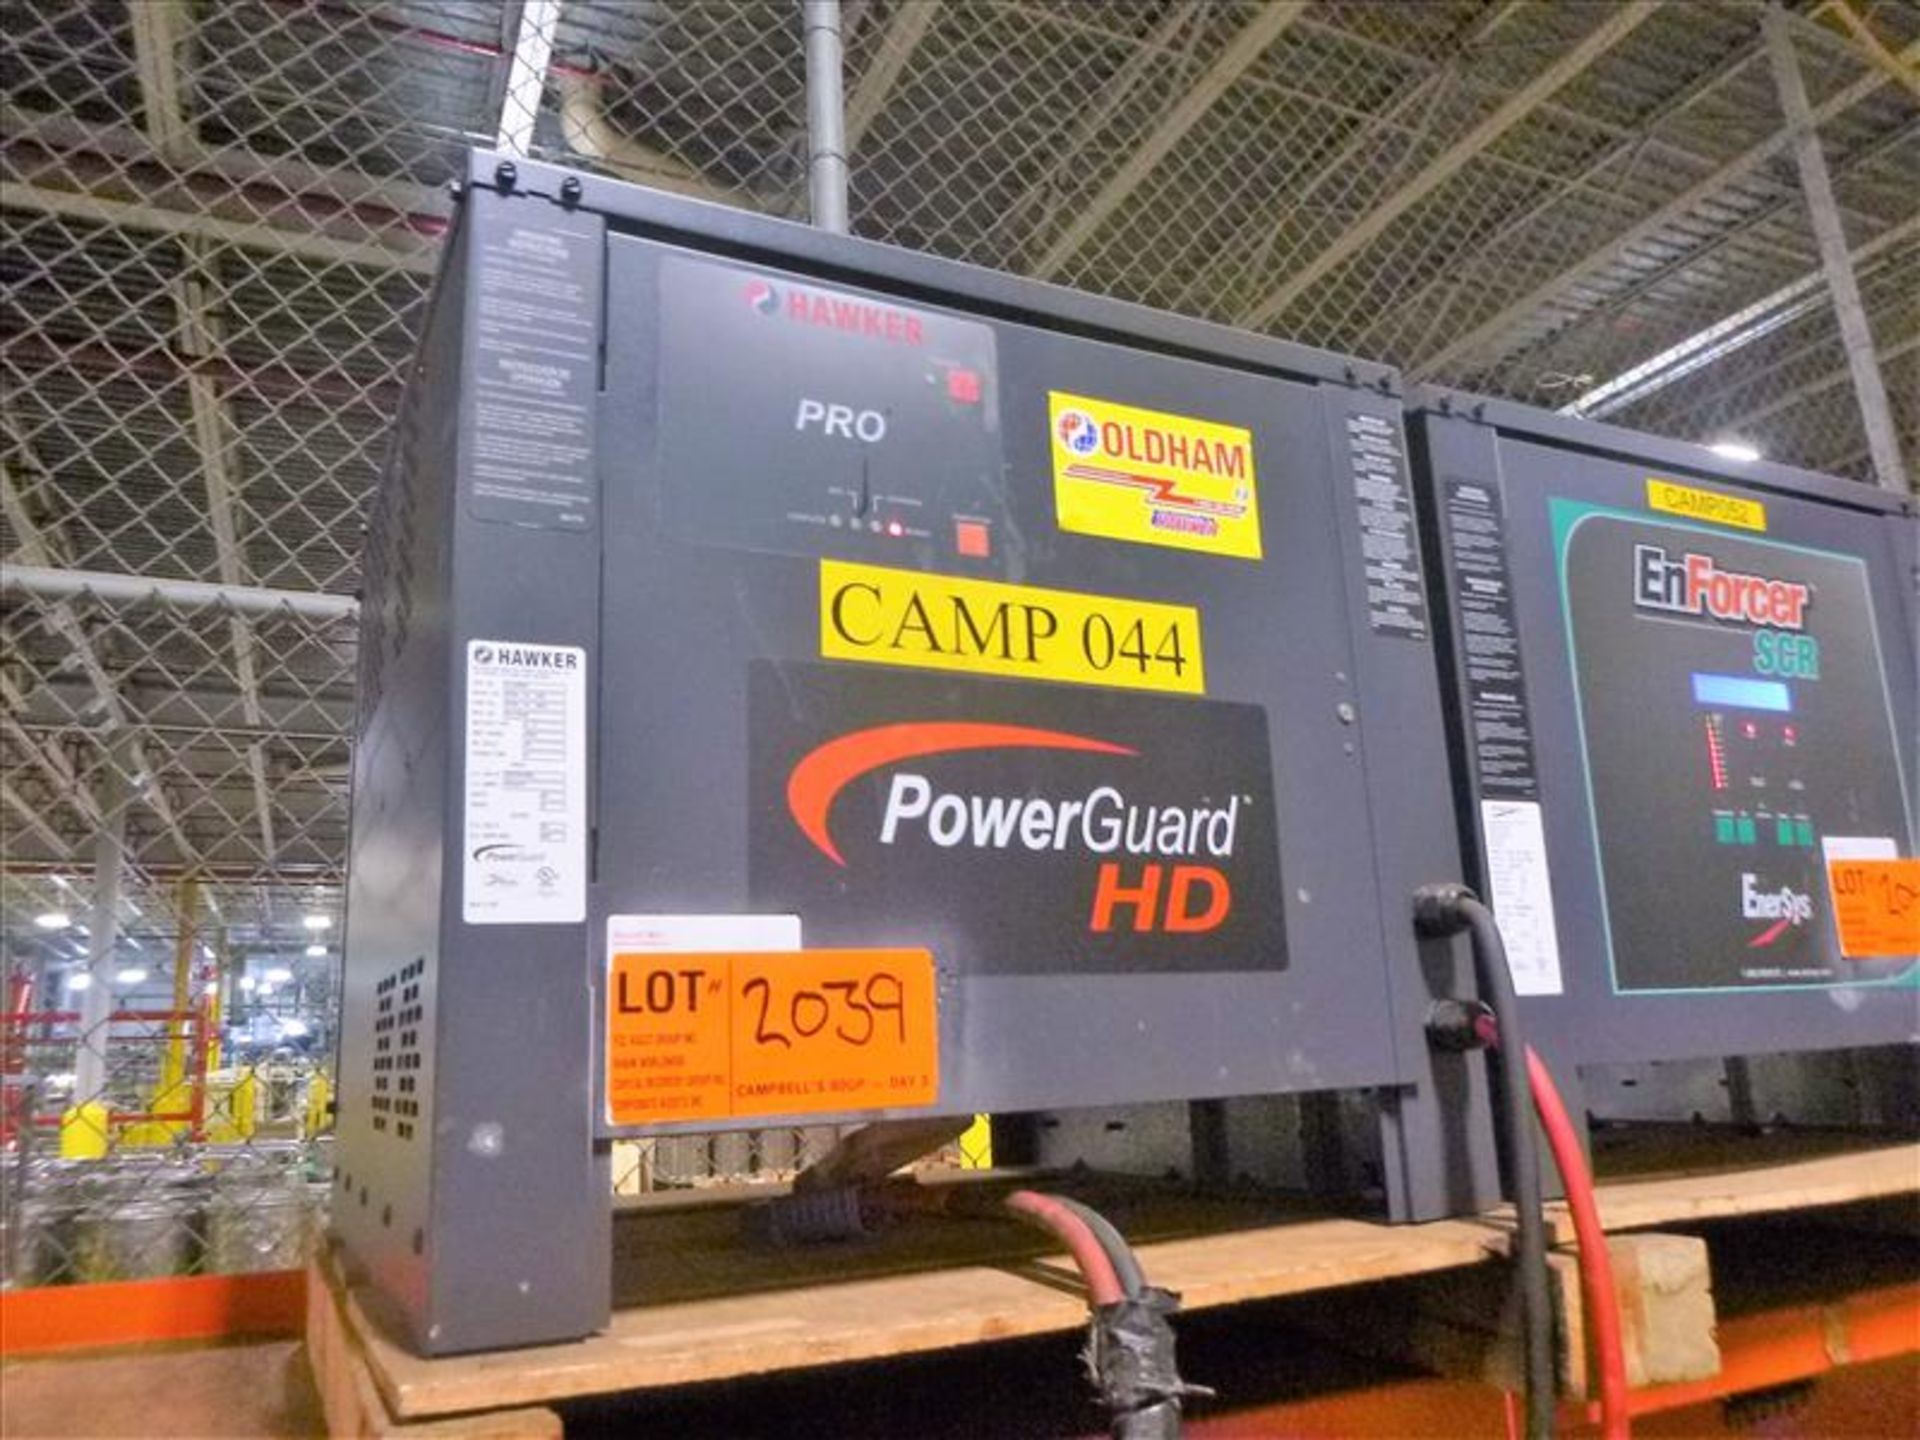 Lot 2039 - Hawker battery charger, 48V [Material Handling]